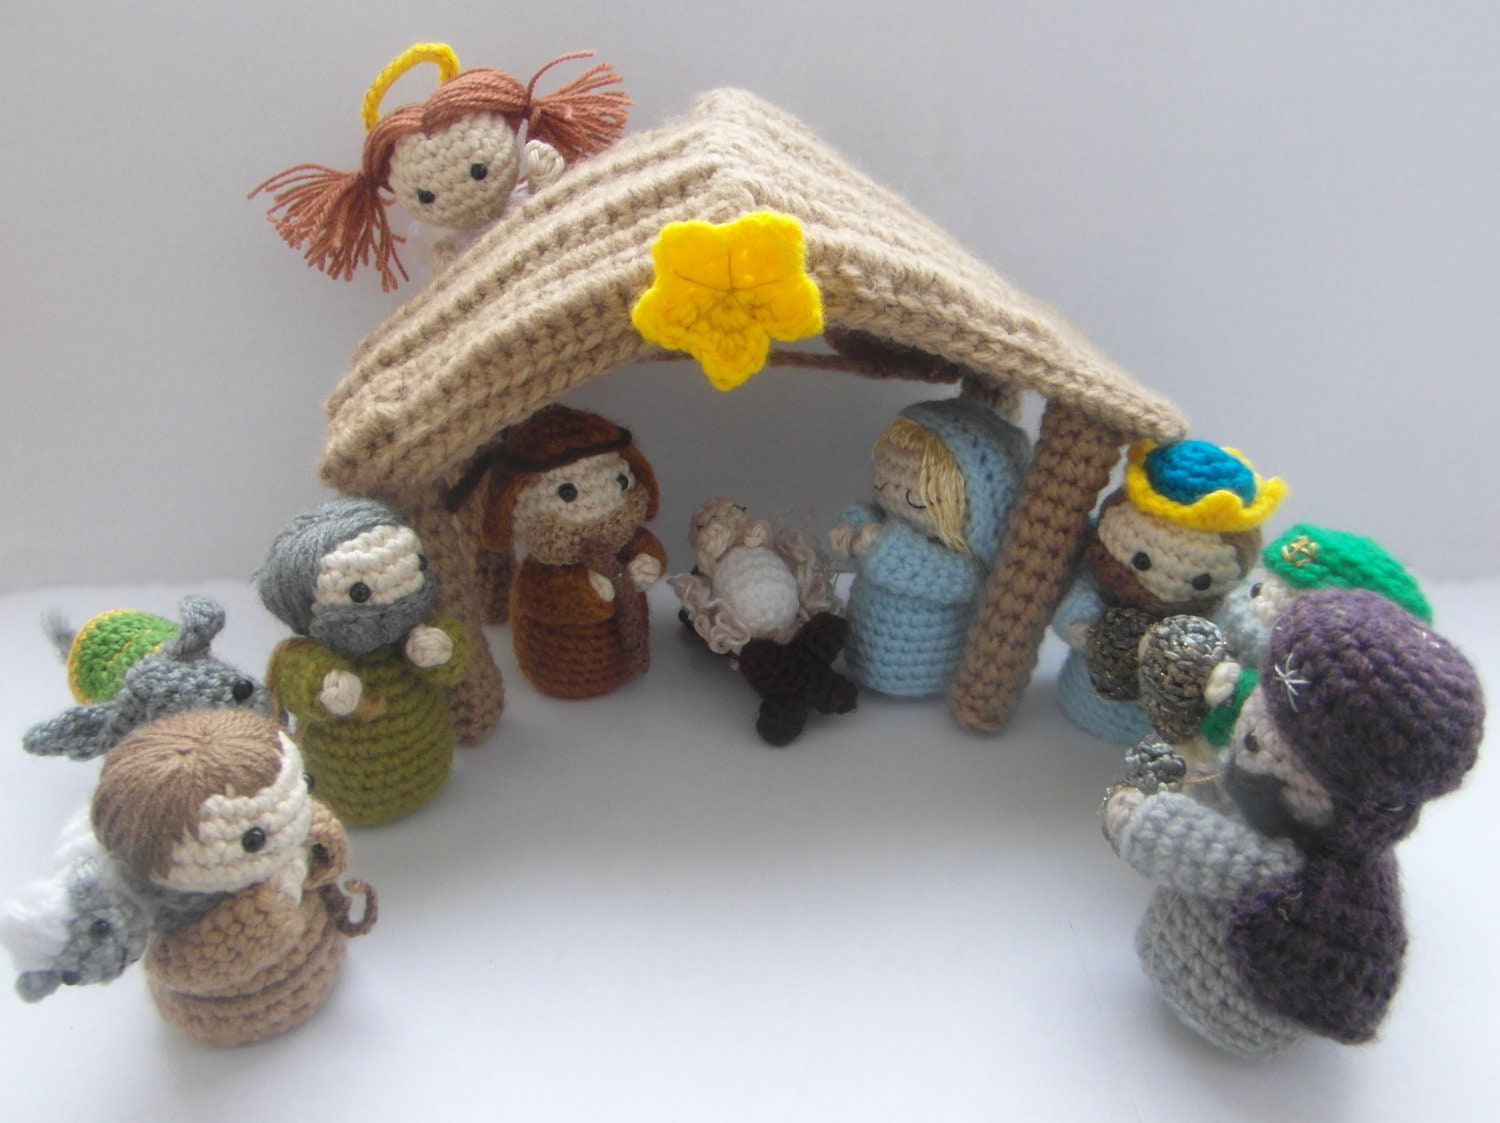 Crochet Patterns Nativity Scene : Items similar to Amigurumi Nativity Scene - crochet ...